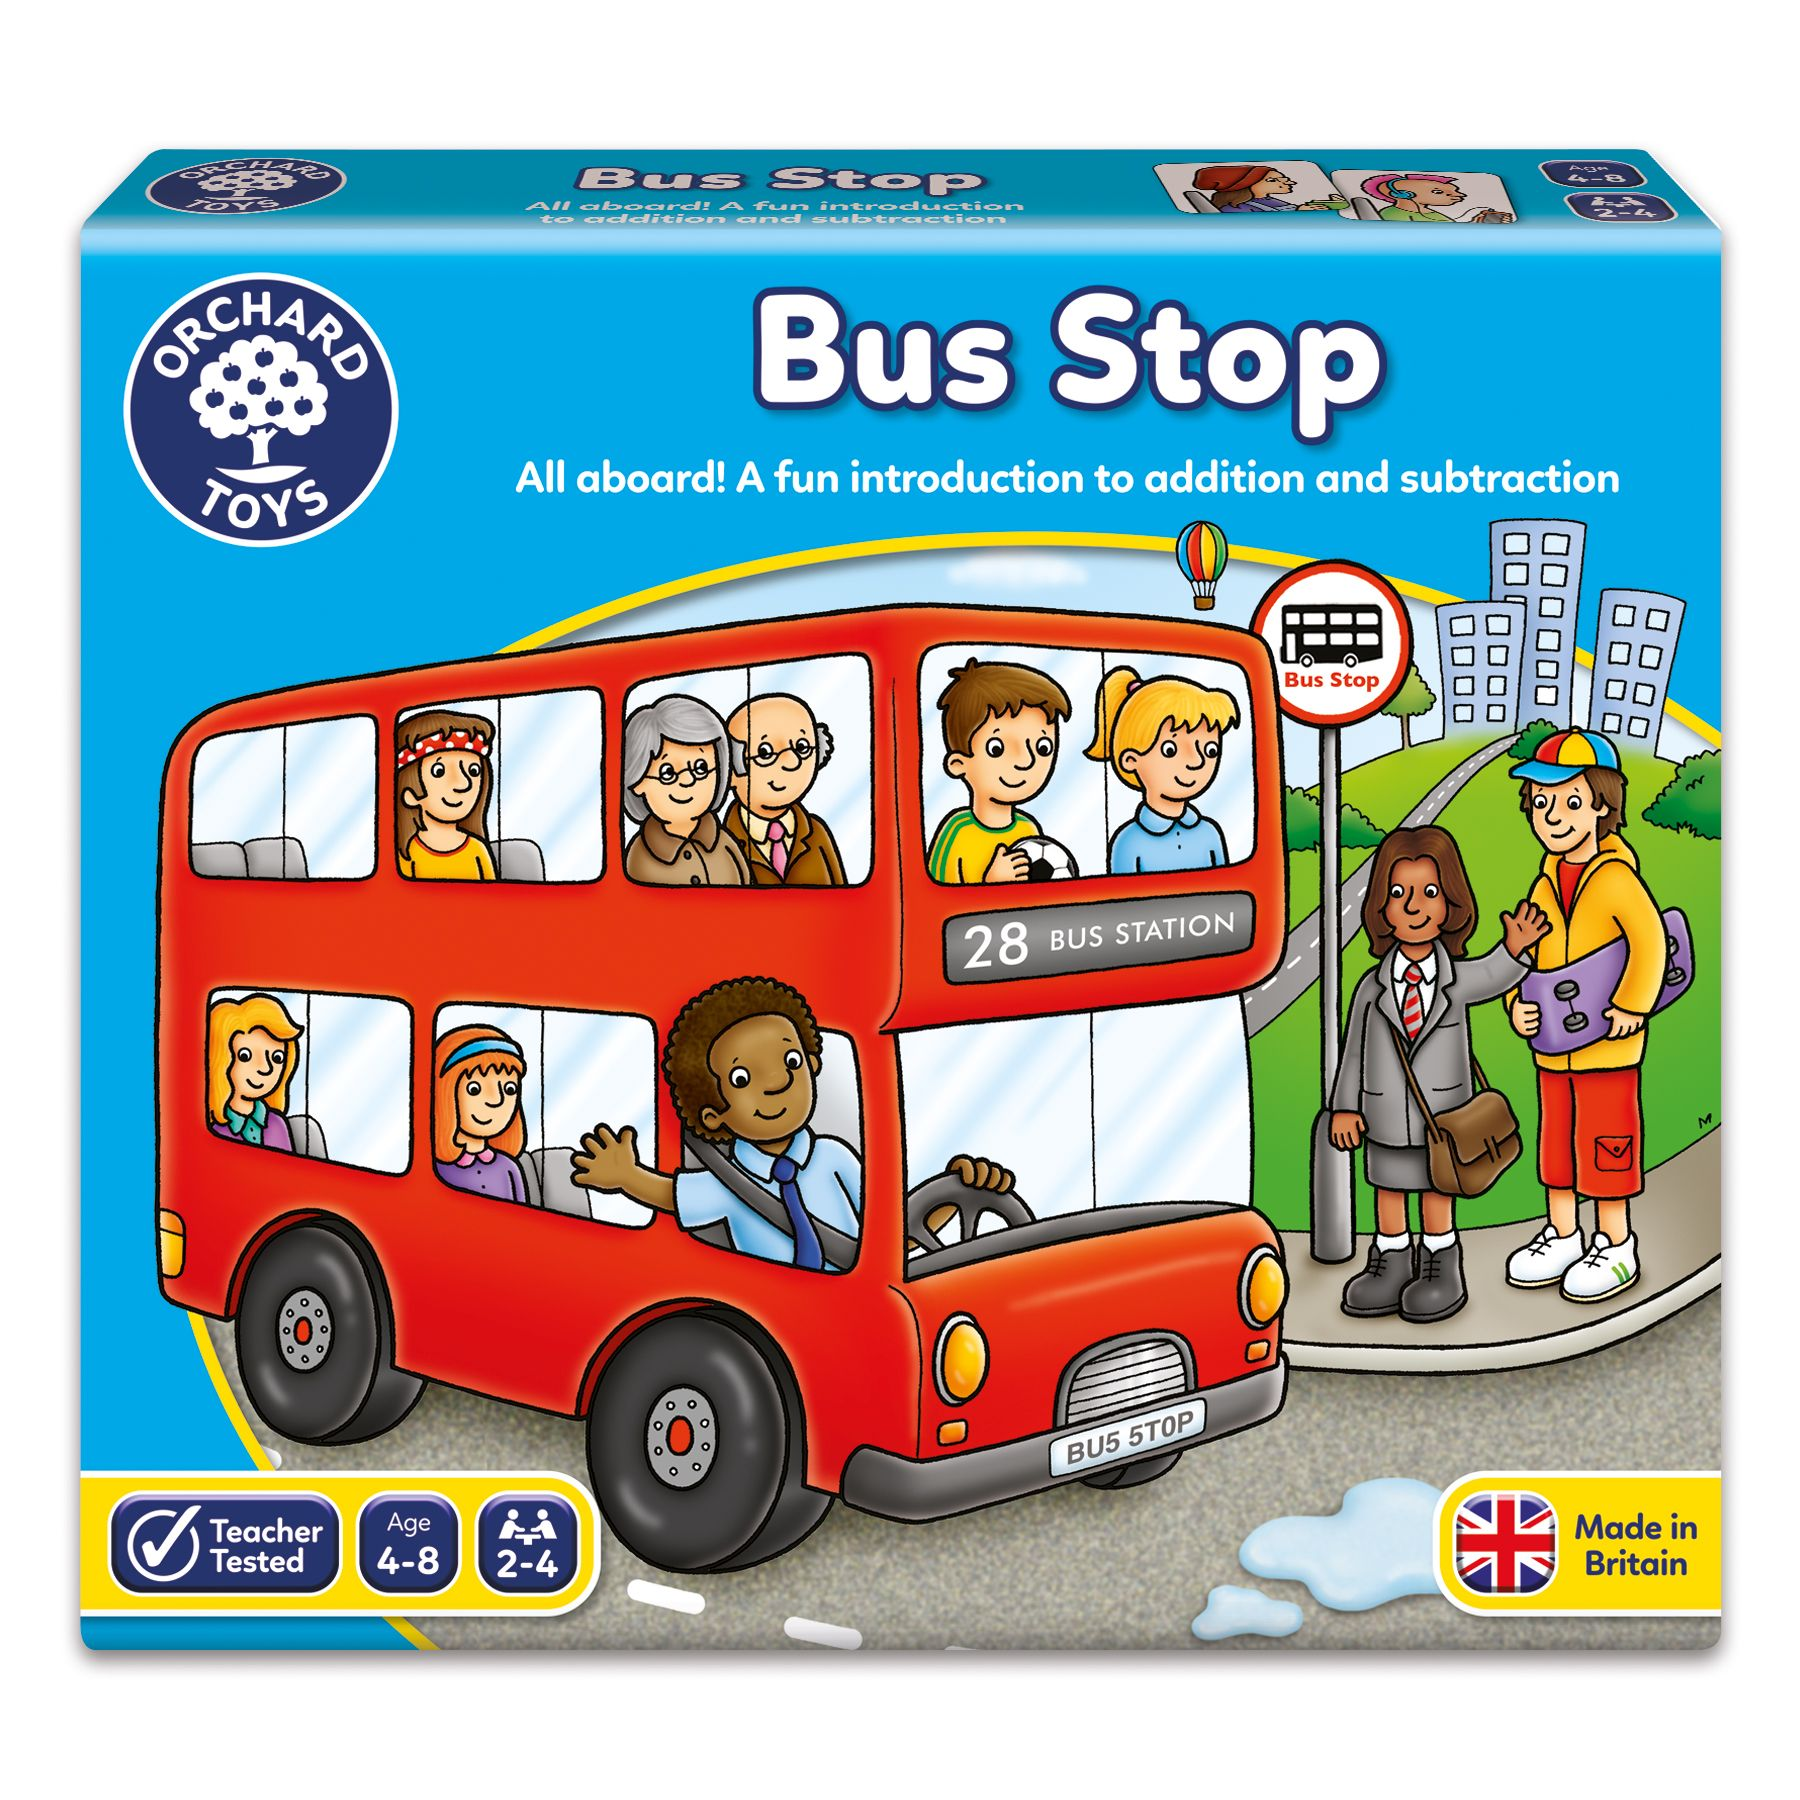 Bus Stop by Orchard Toys